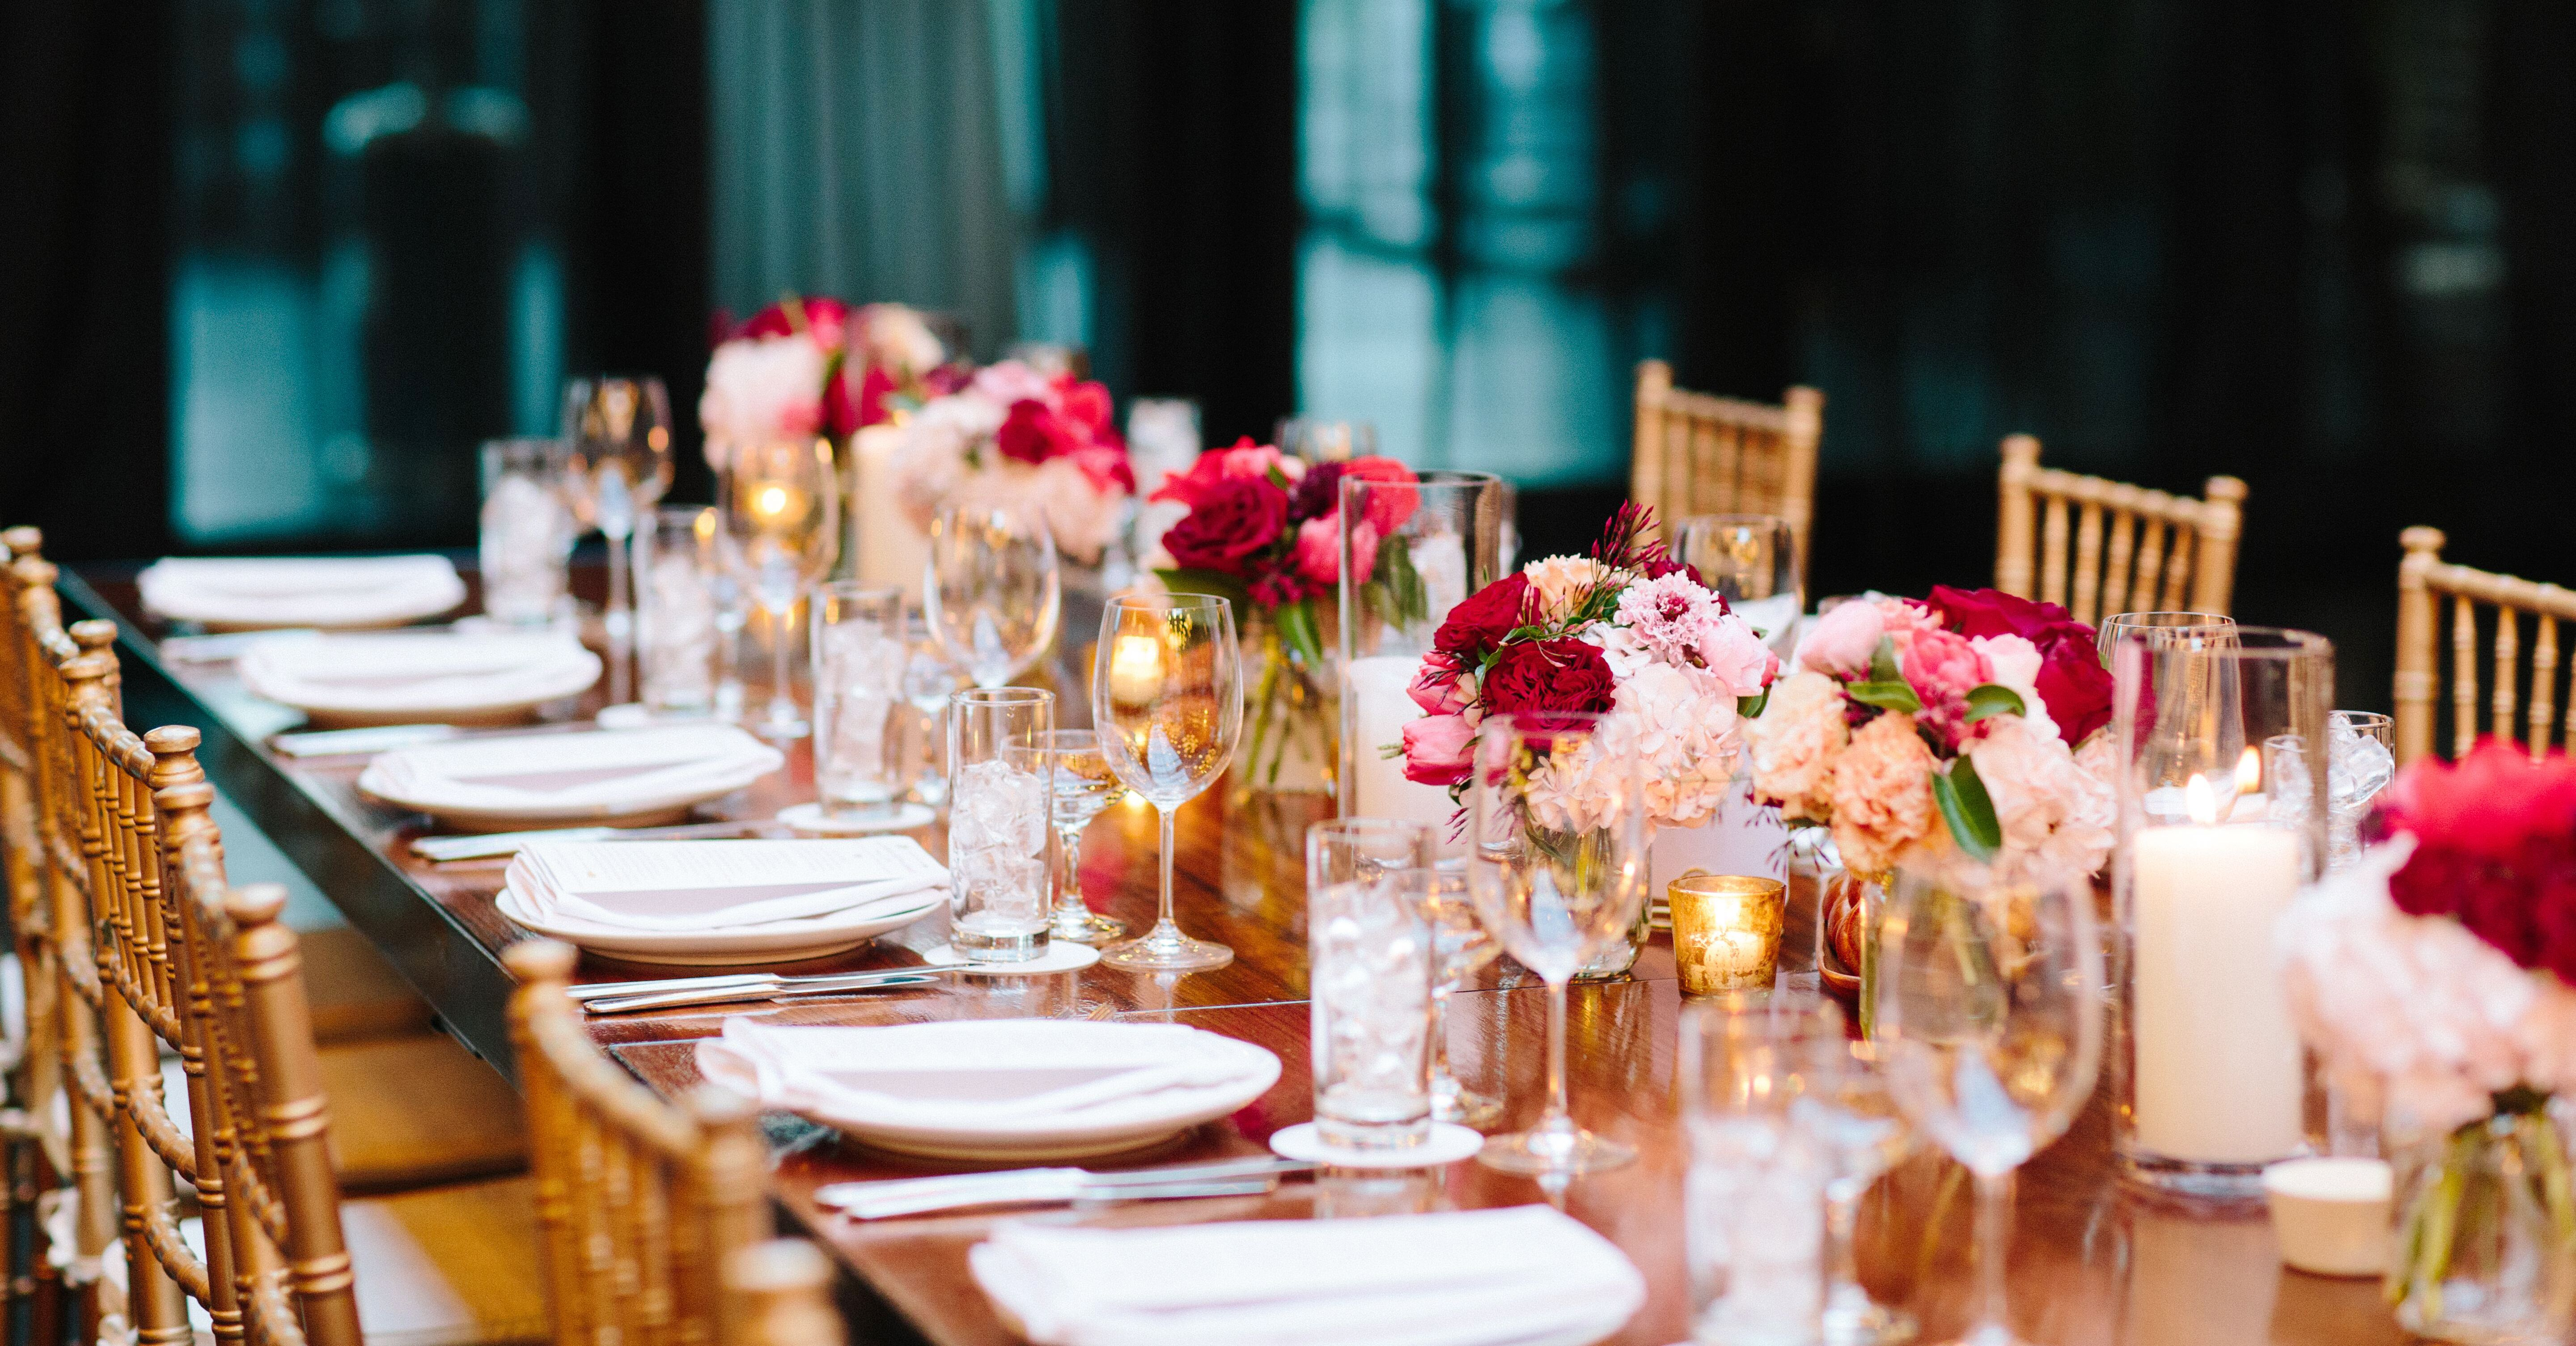 Who Should You Invite To The Rehearsal Dinner